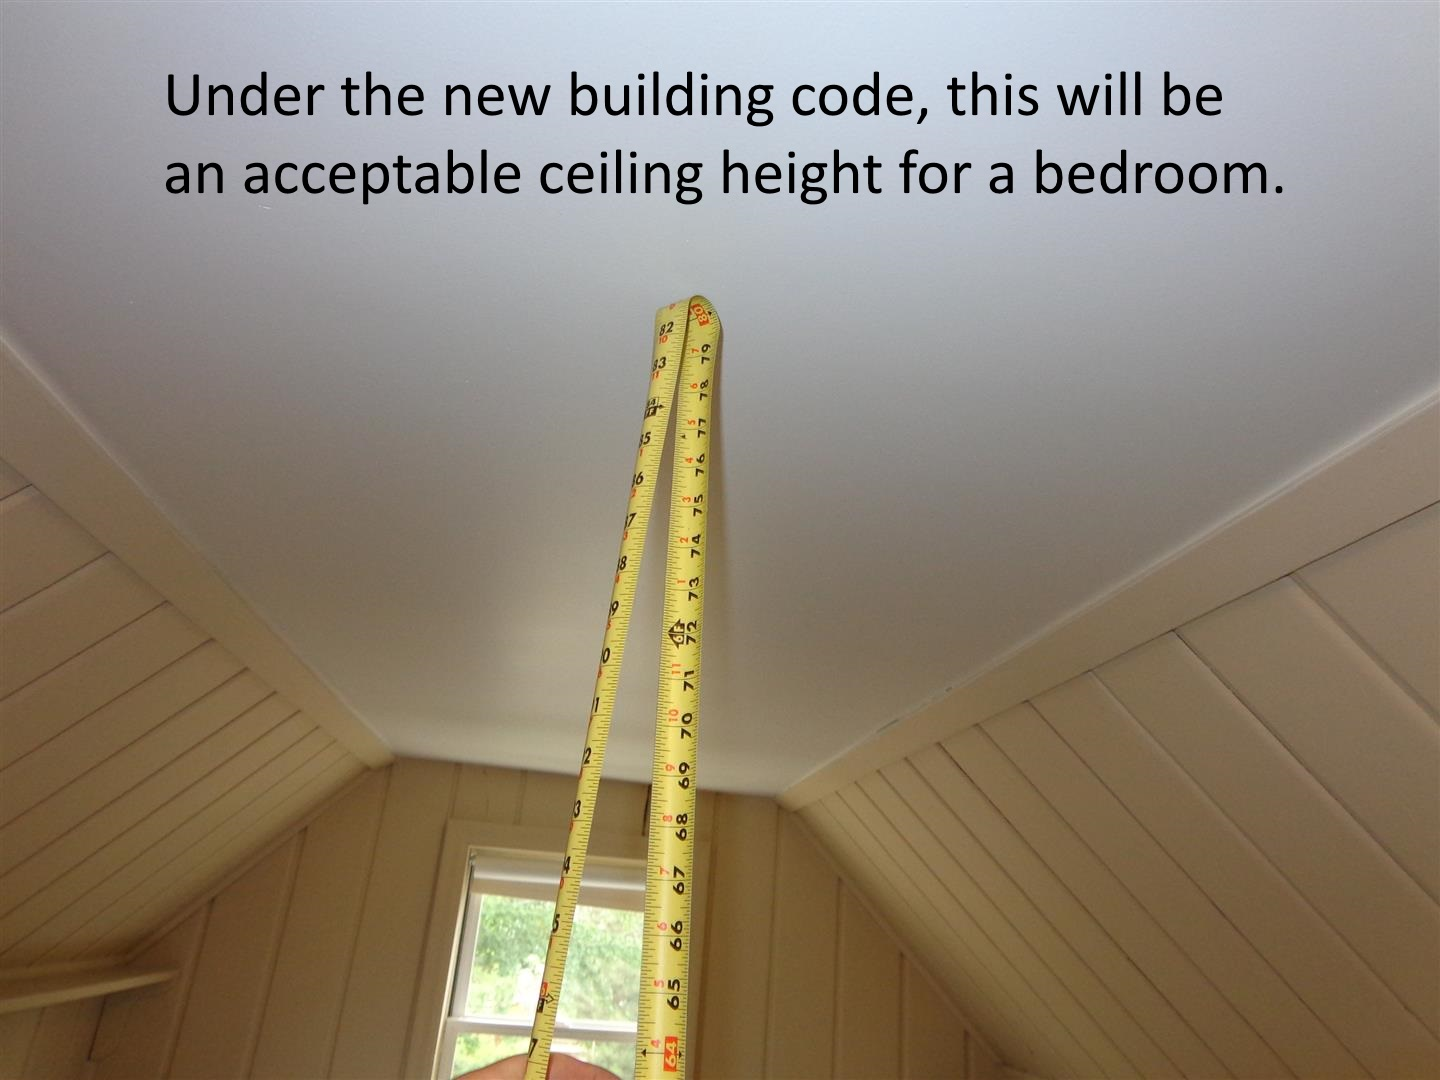 Bedroom Ceiling Height Homes Msp Real Estate Blog Inspections